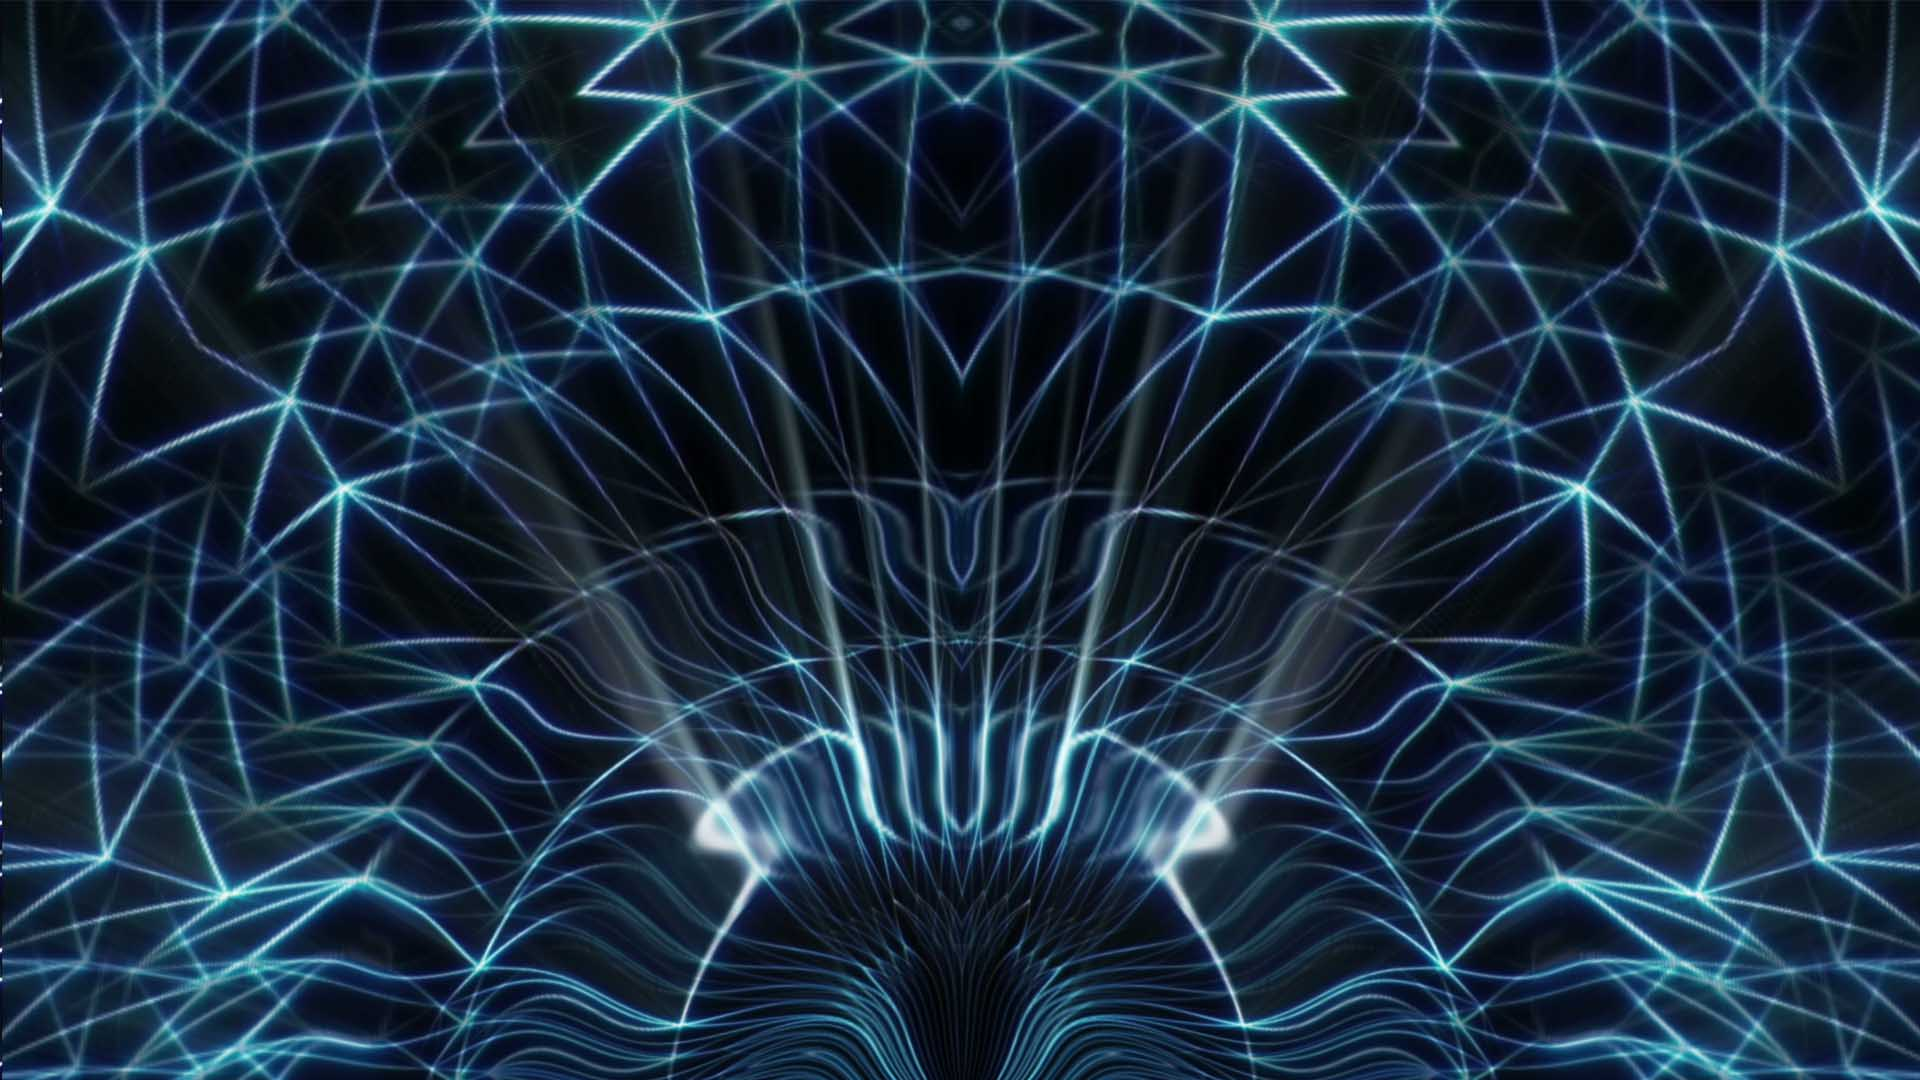 Blue lines Vj loop video wallpaper